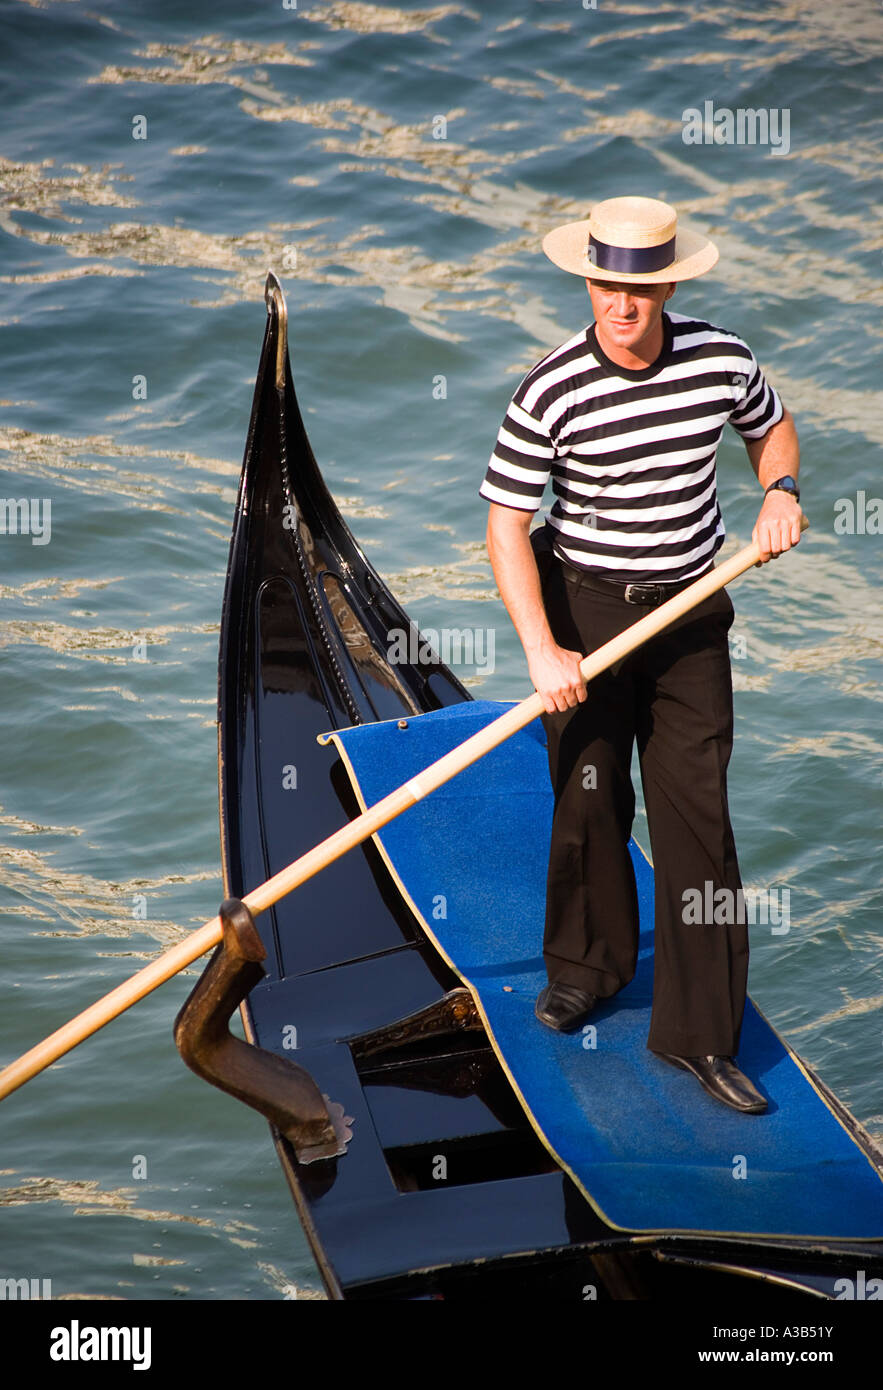 664d982f4f9 ITALY Veneto Venice Gondolier wearing striped t-shirt and straw boater hat  rowing his gondola